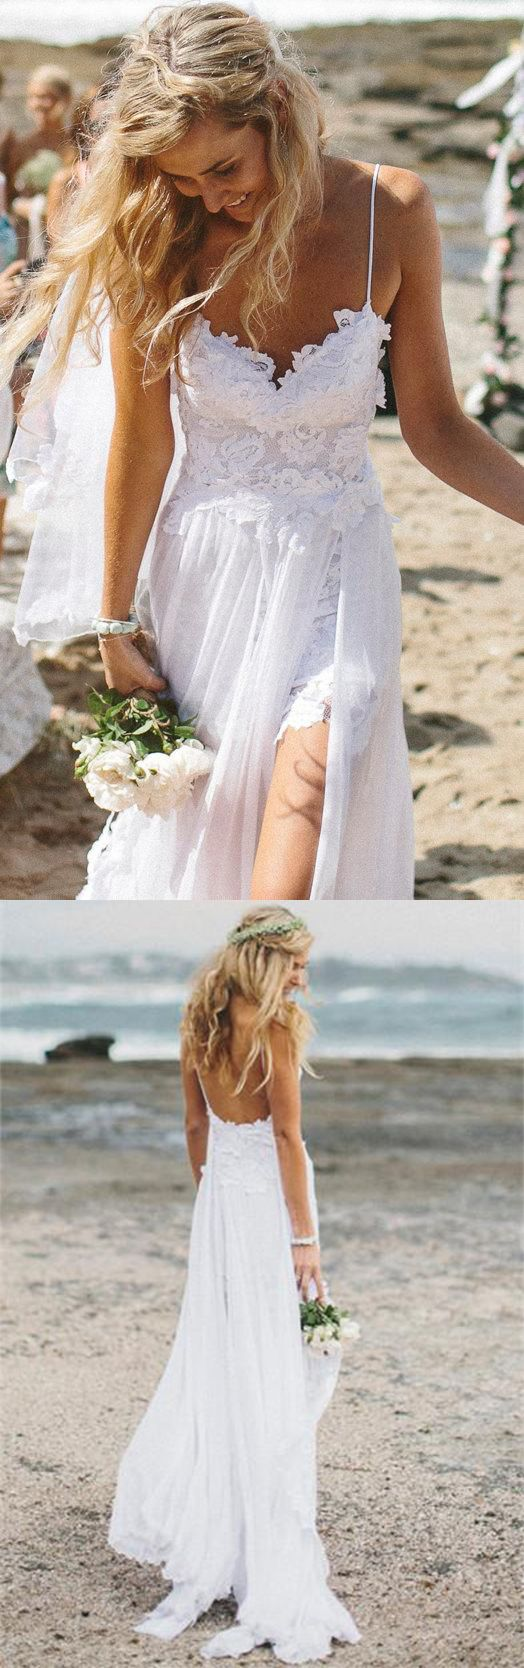 Beach Simple Wedding Dresses Casual Wedding Dresses White Tulle A